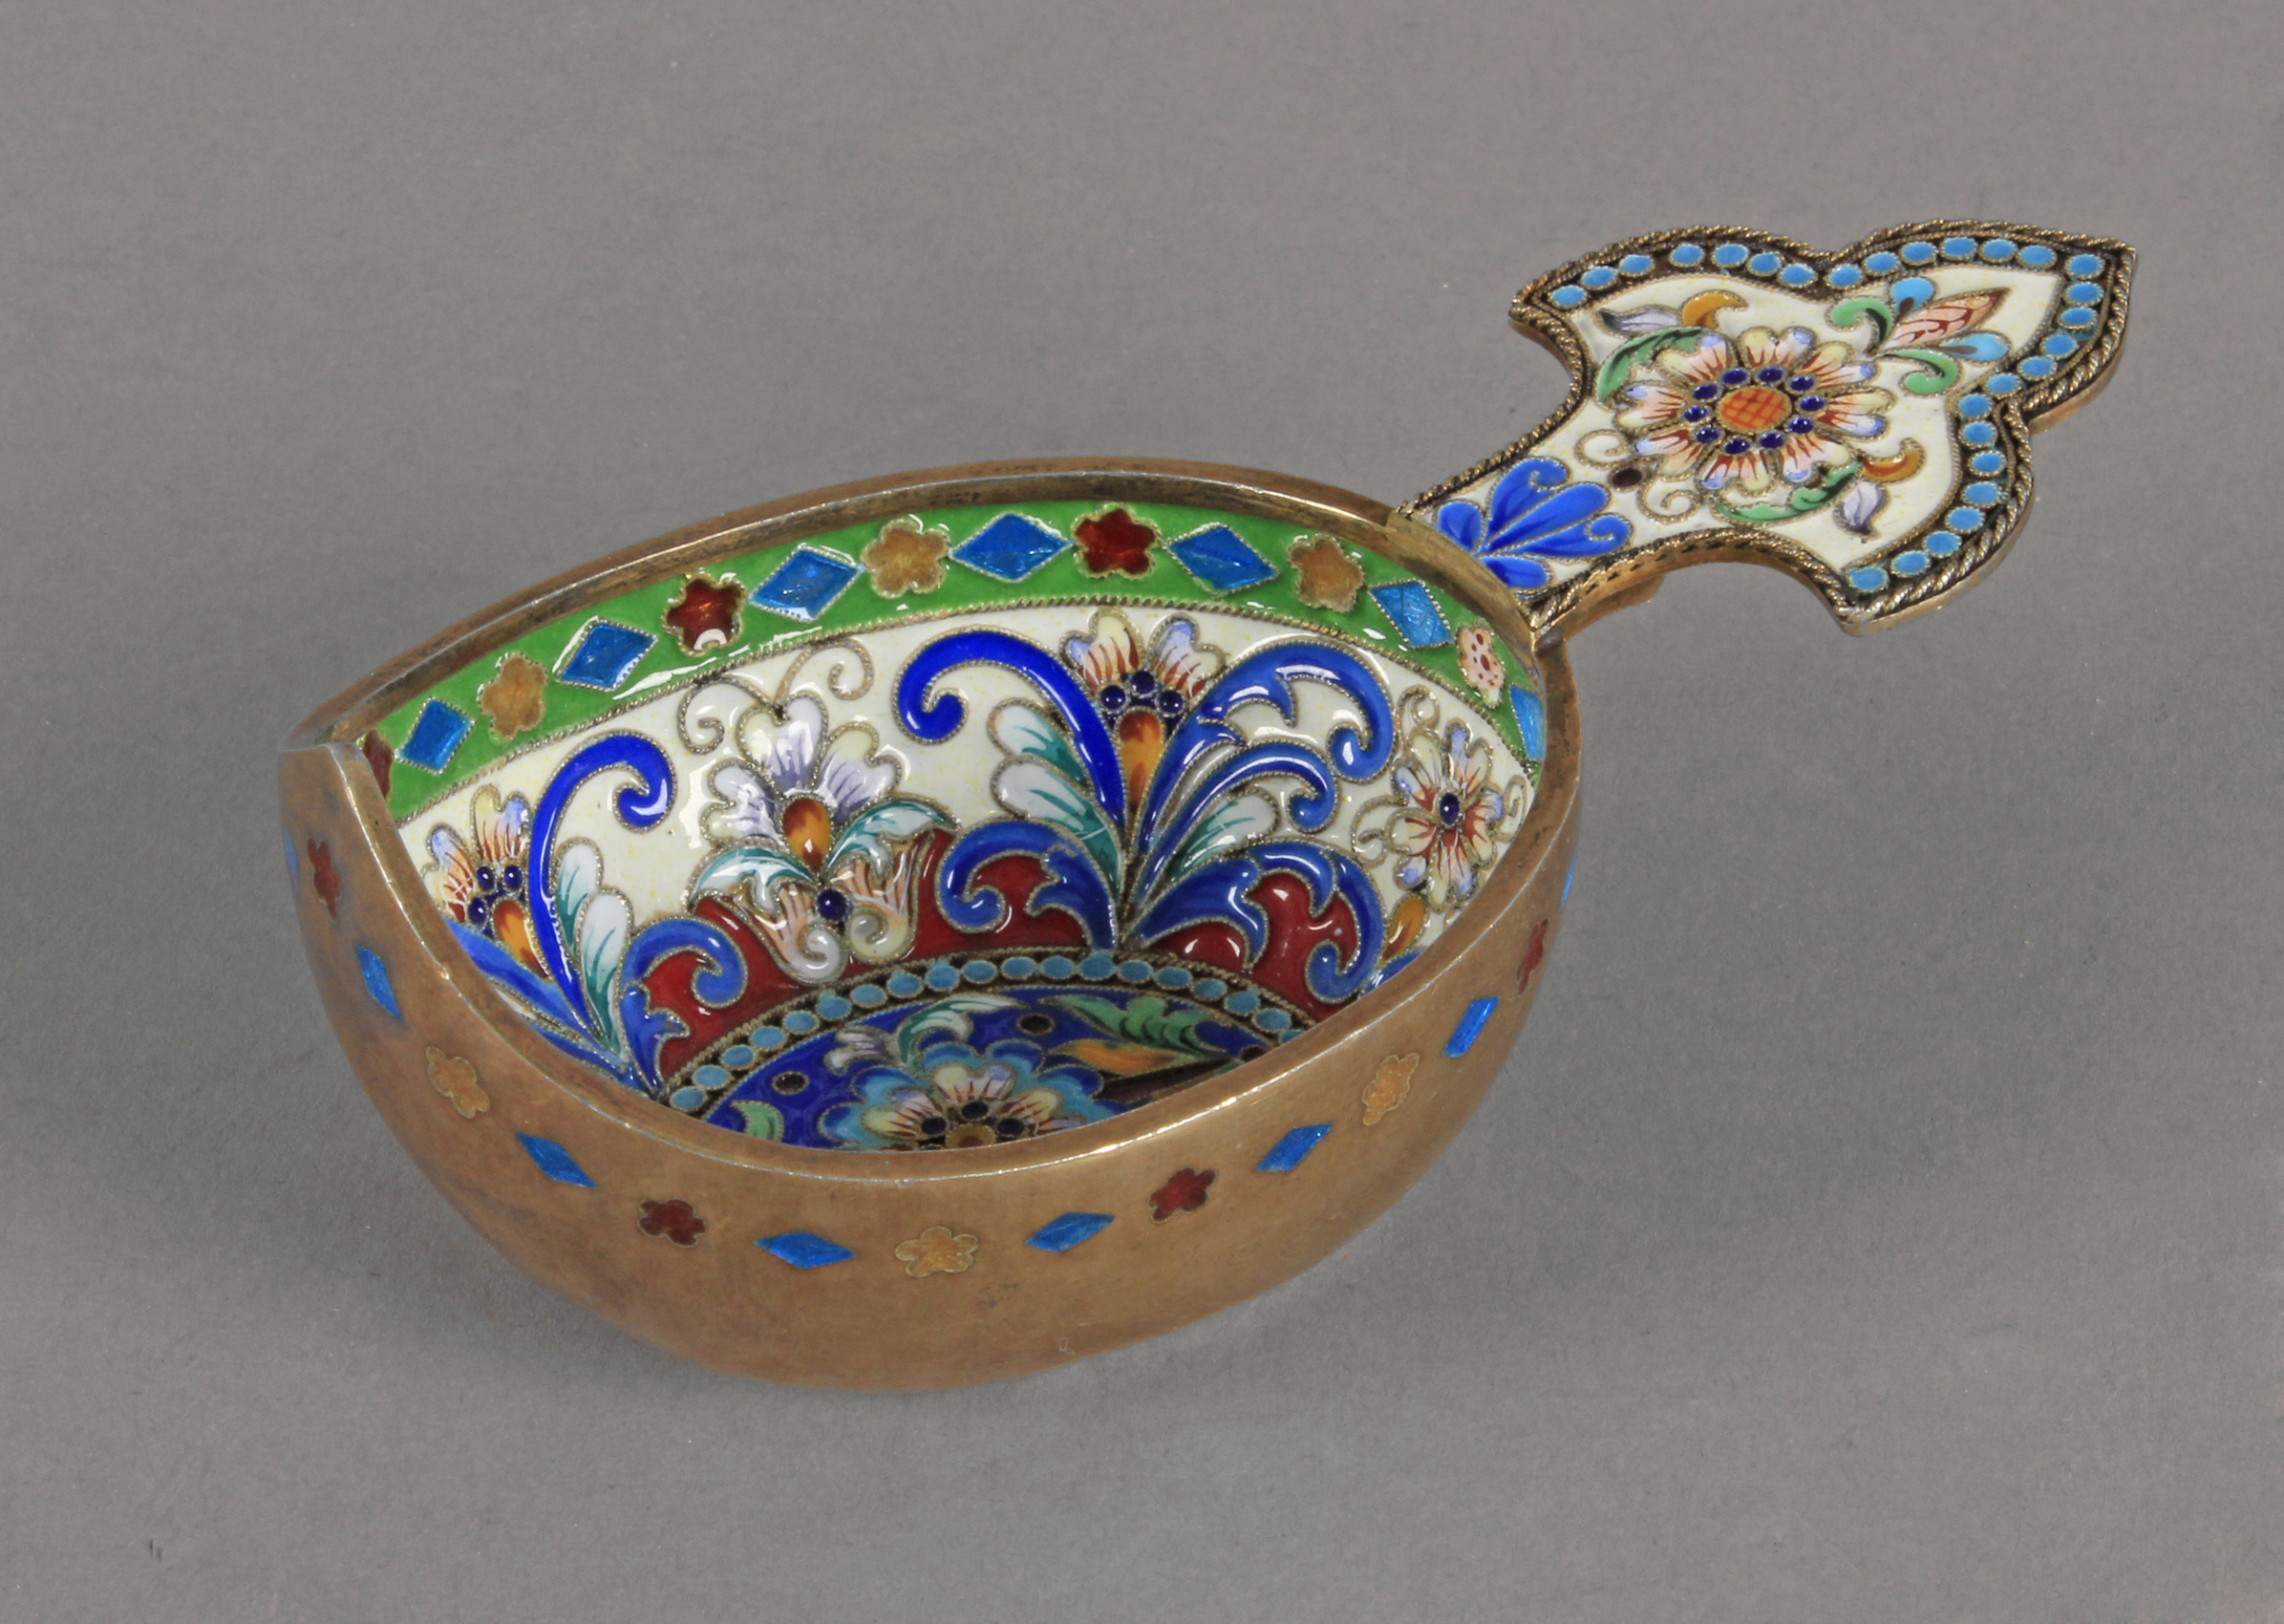 A 20th century Russian silver and cloisonné enamel kowsch